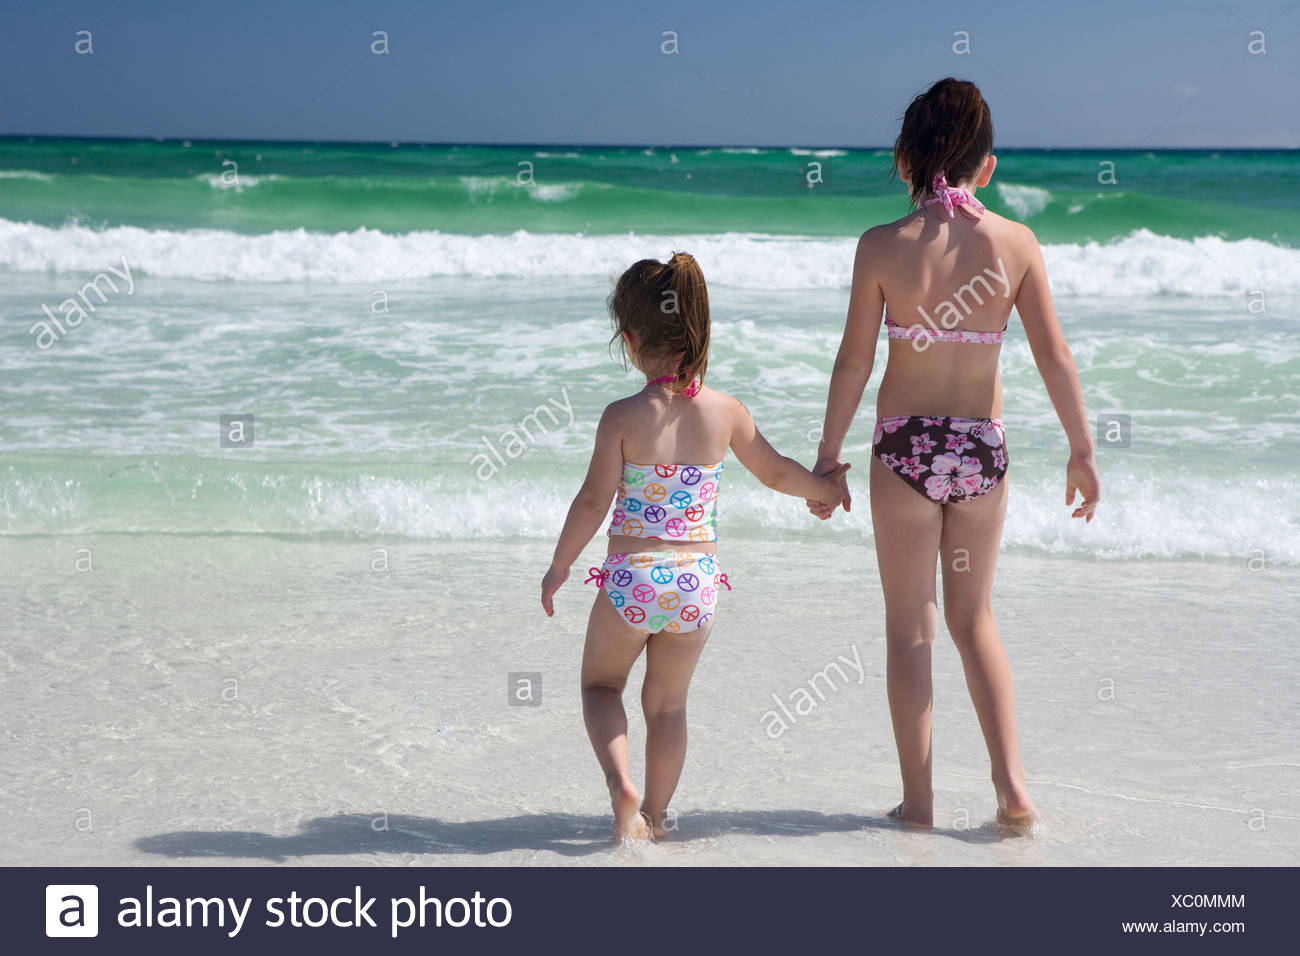 Two little girls in bikinis are holding hands at shoreline with the ocean in the background. - Stock Image